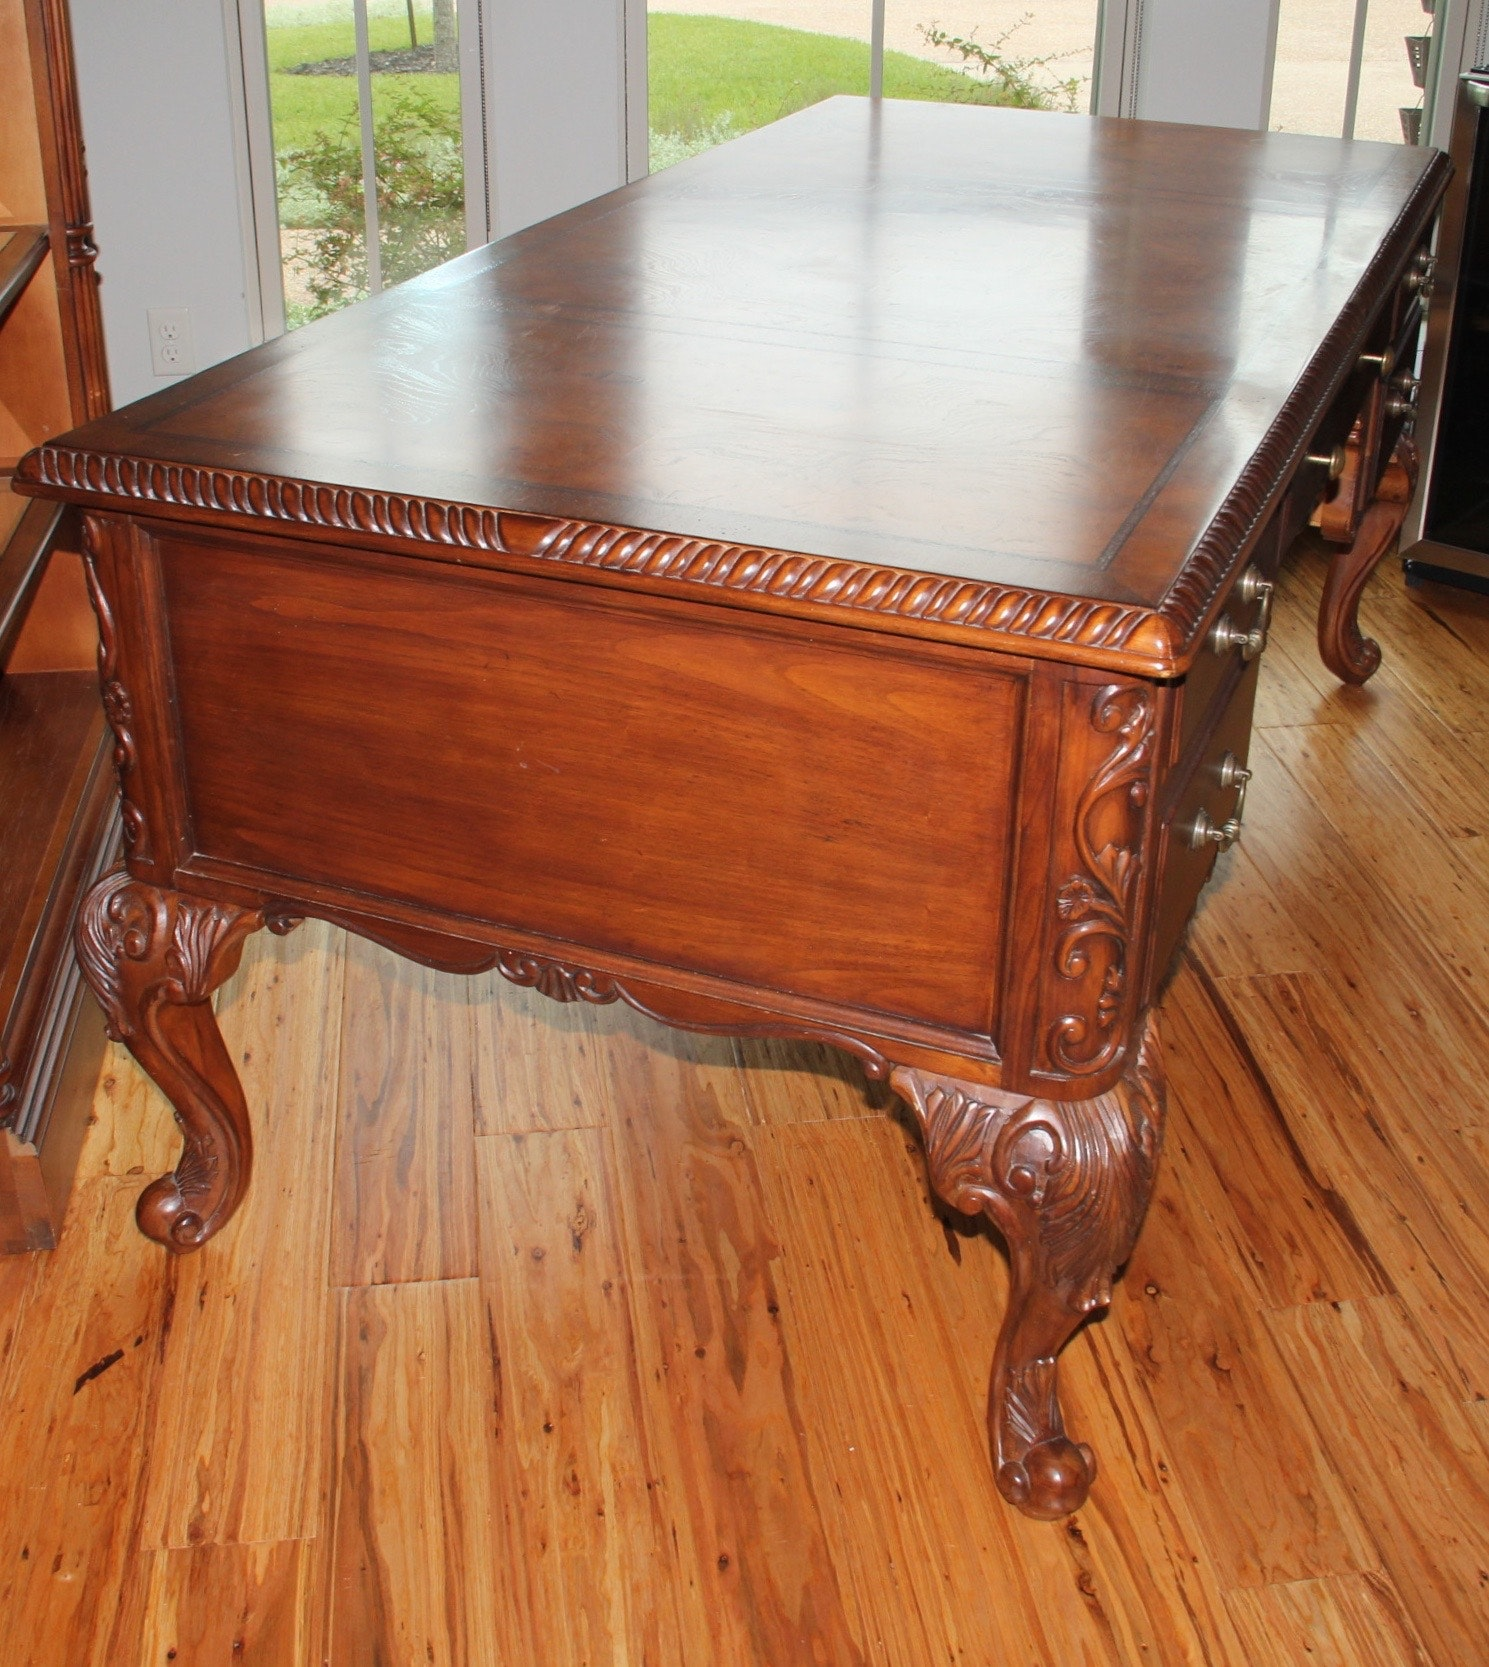 """""""seven Seas"""" Executive Desk By Hooker Furniture  Ebth. Best Non Desk Jobs. High Table. Desks That Raise. Personal Desk Calendar. Tall Mirrored Chest Of Drawers. Deck Tables. Crib Drawers Underneath. Apple Desk Accessories"""